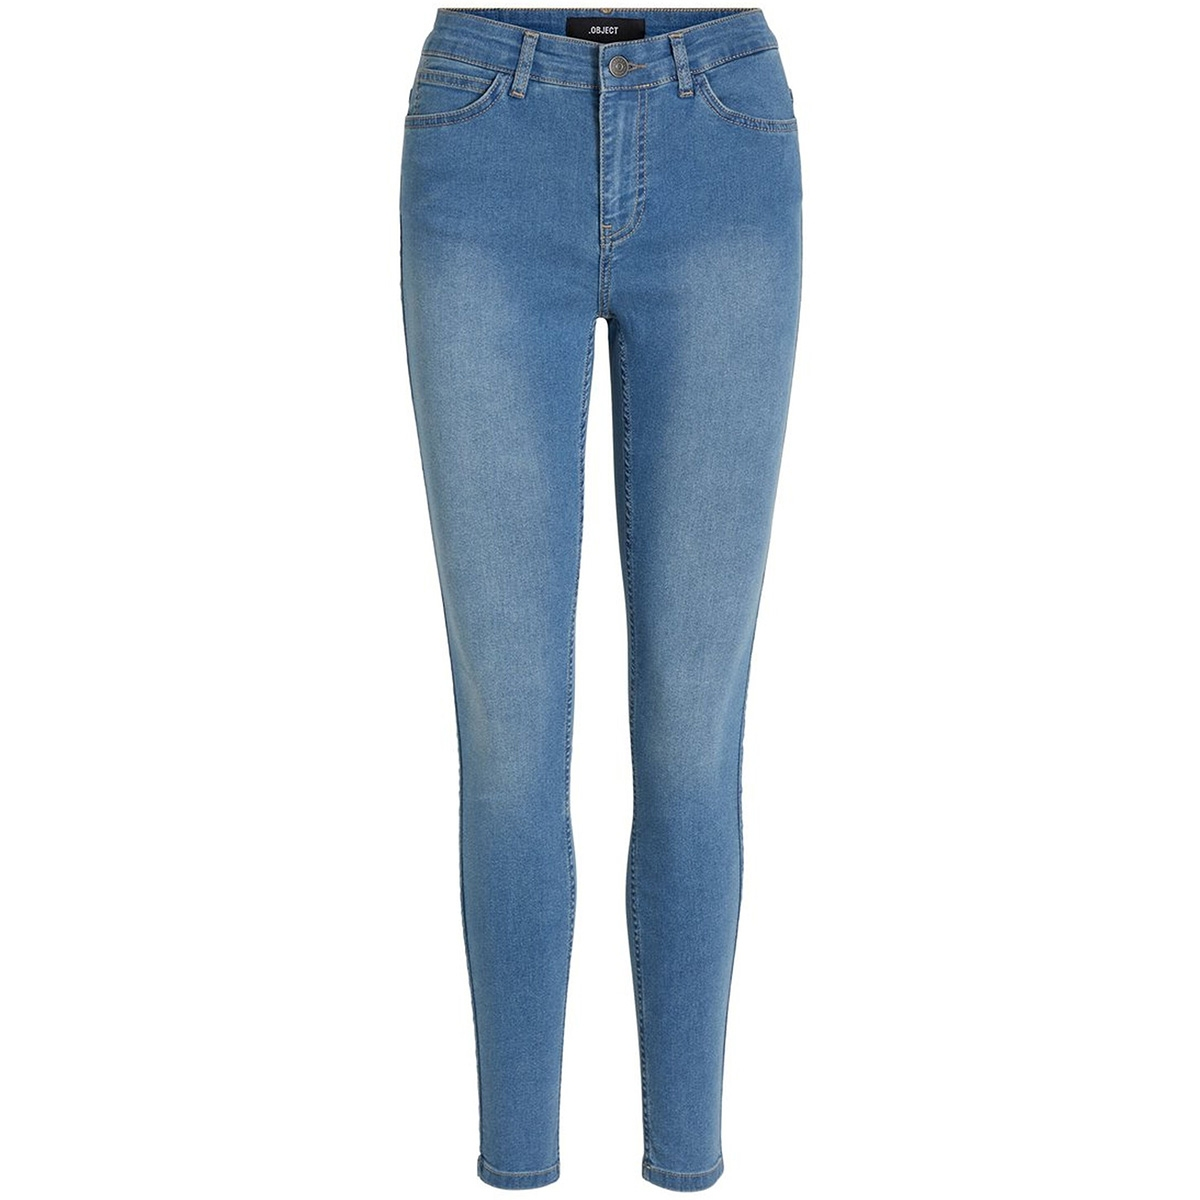 objskinnysophie m/w obb310noos 23031860 object jeans light blue denim